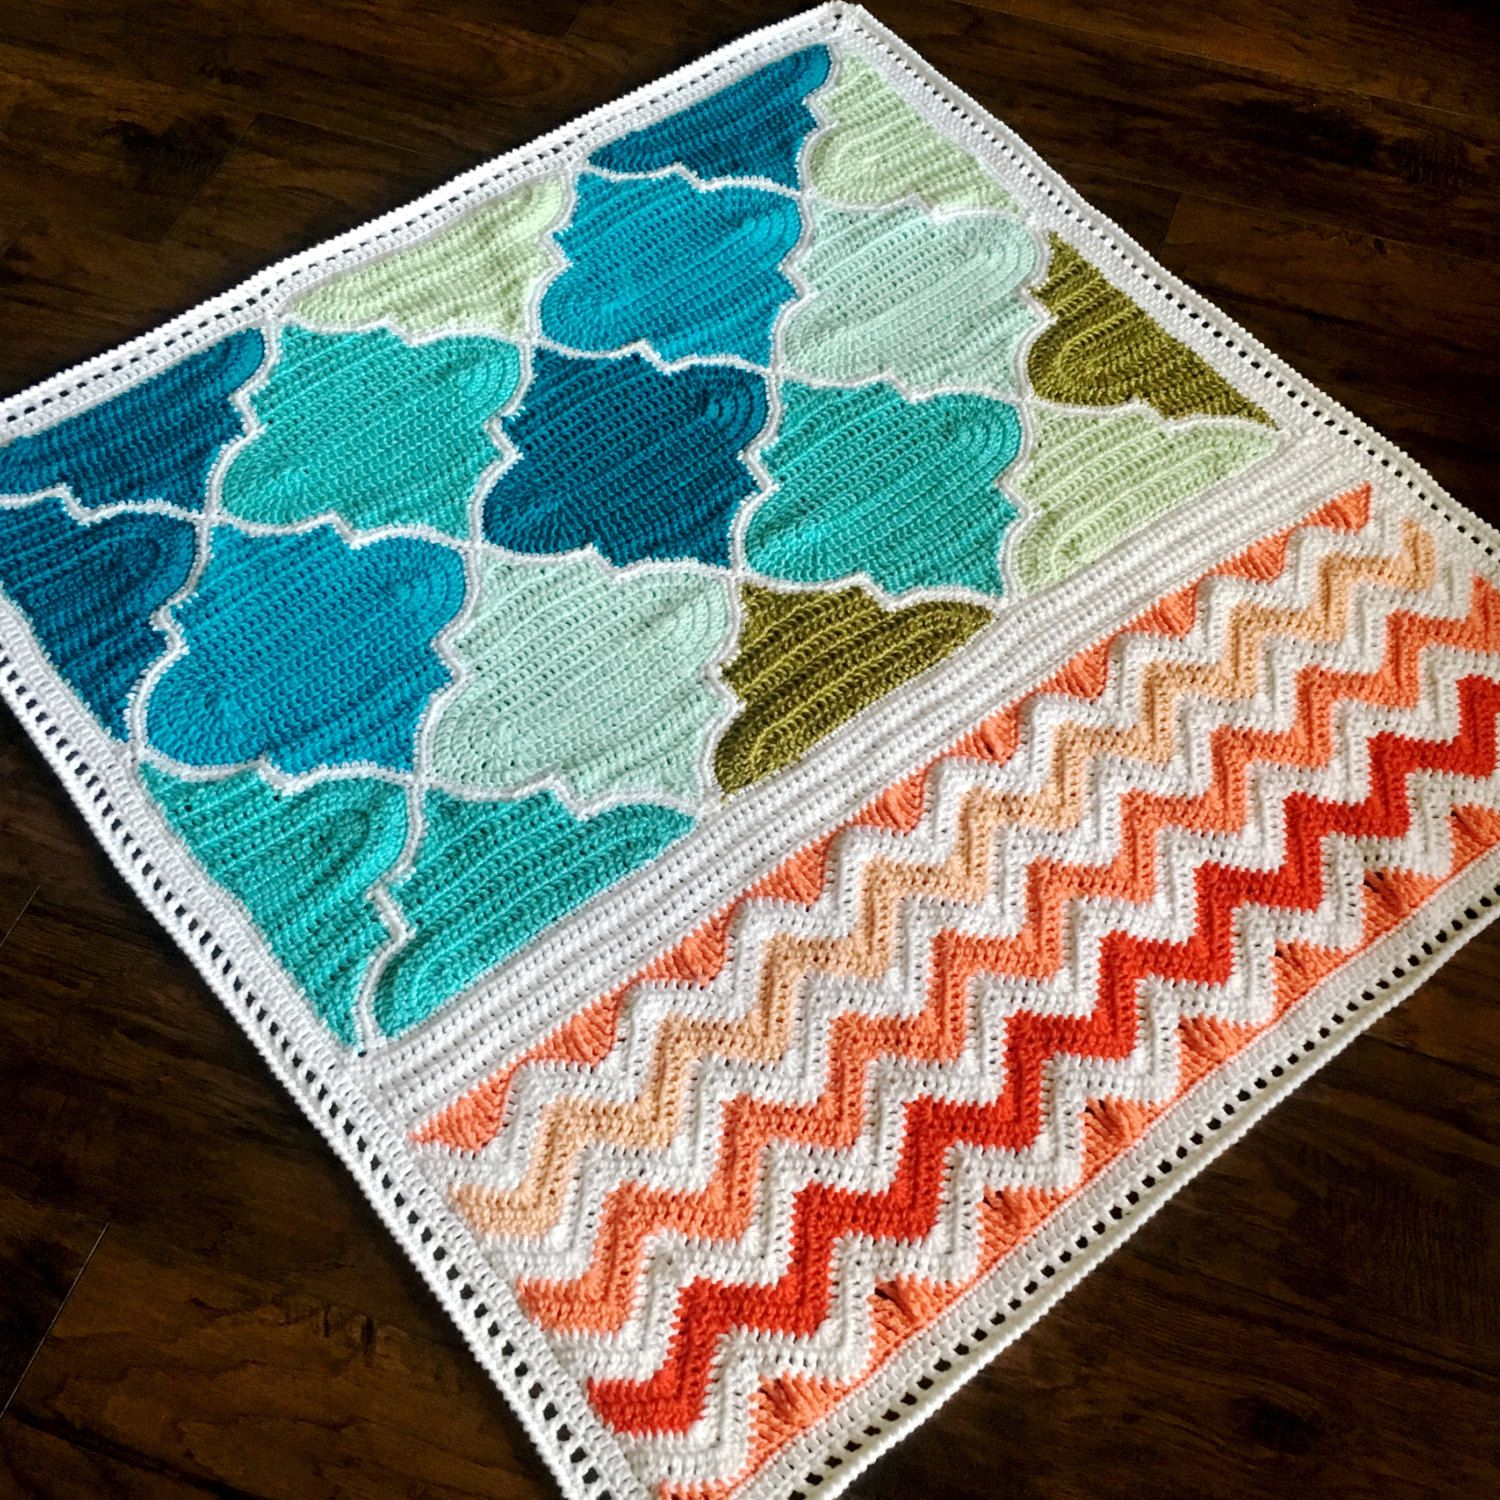 Pattern BabyLove Brand Trellis and Chevron Blanket Crochet | crochet ...